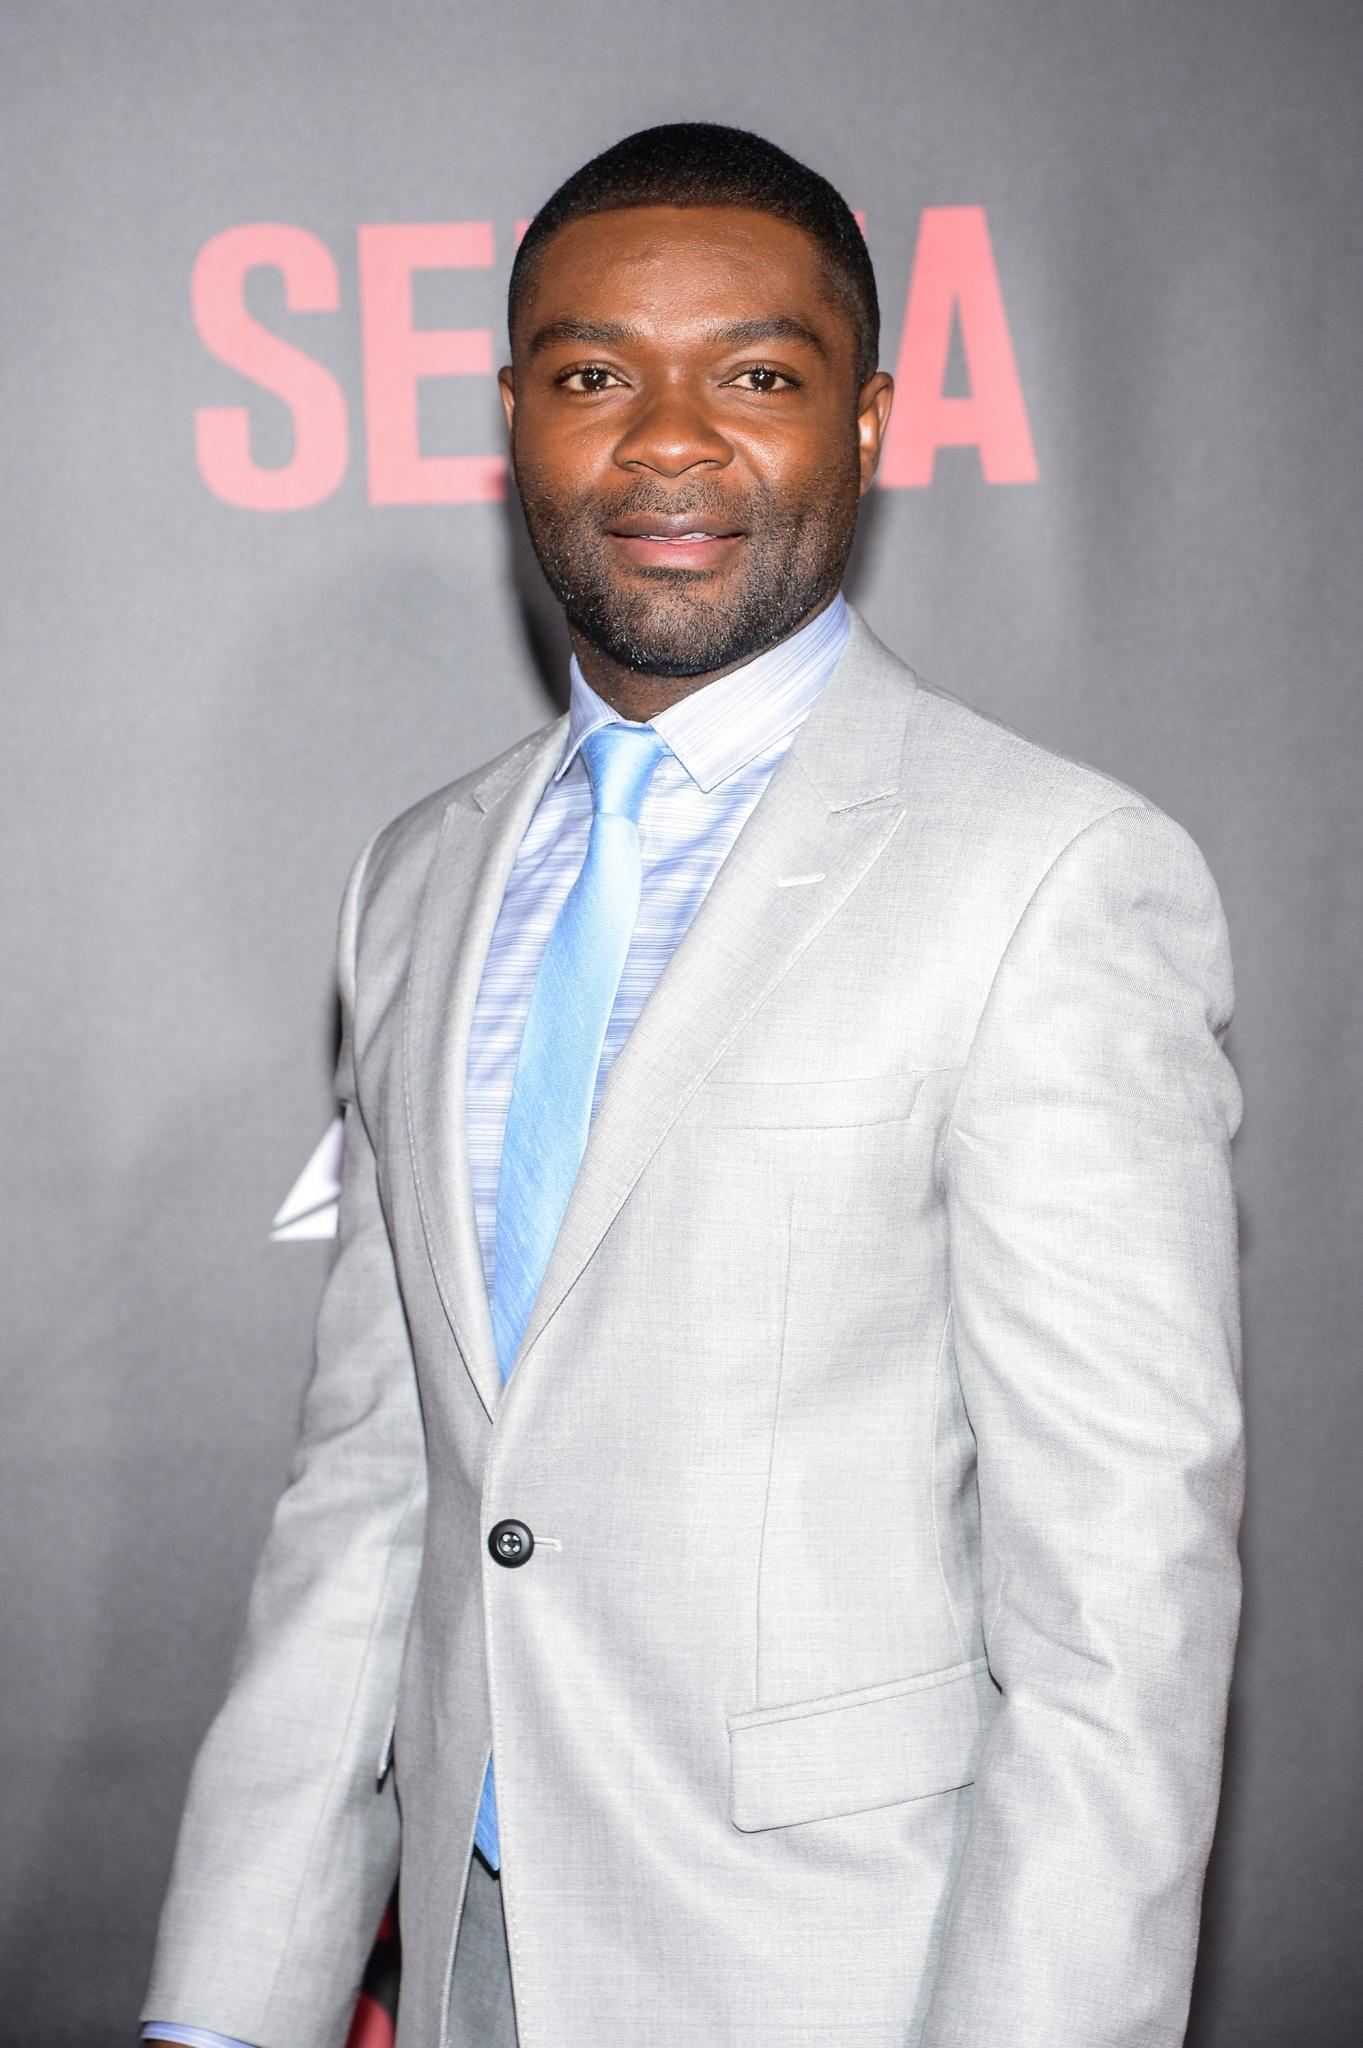 EXCLUSIVE: David Oyelowo Talks 'Selma,' Ferguson and Playing the Iconic Dr. Martin Luther King, Jr.